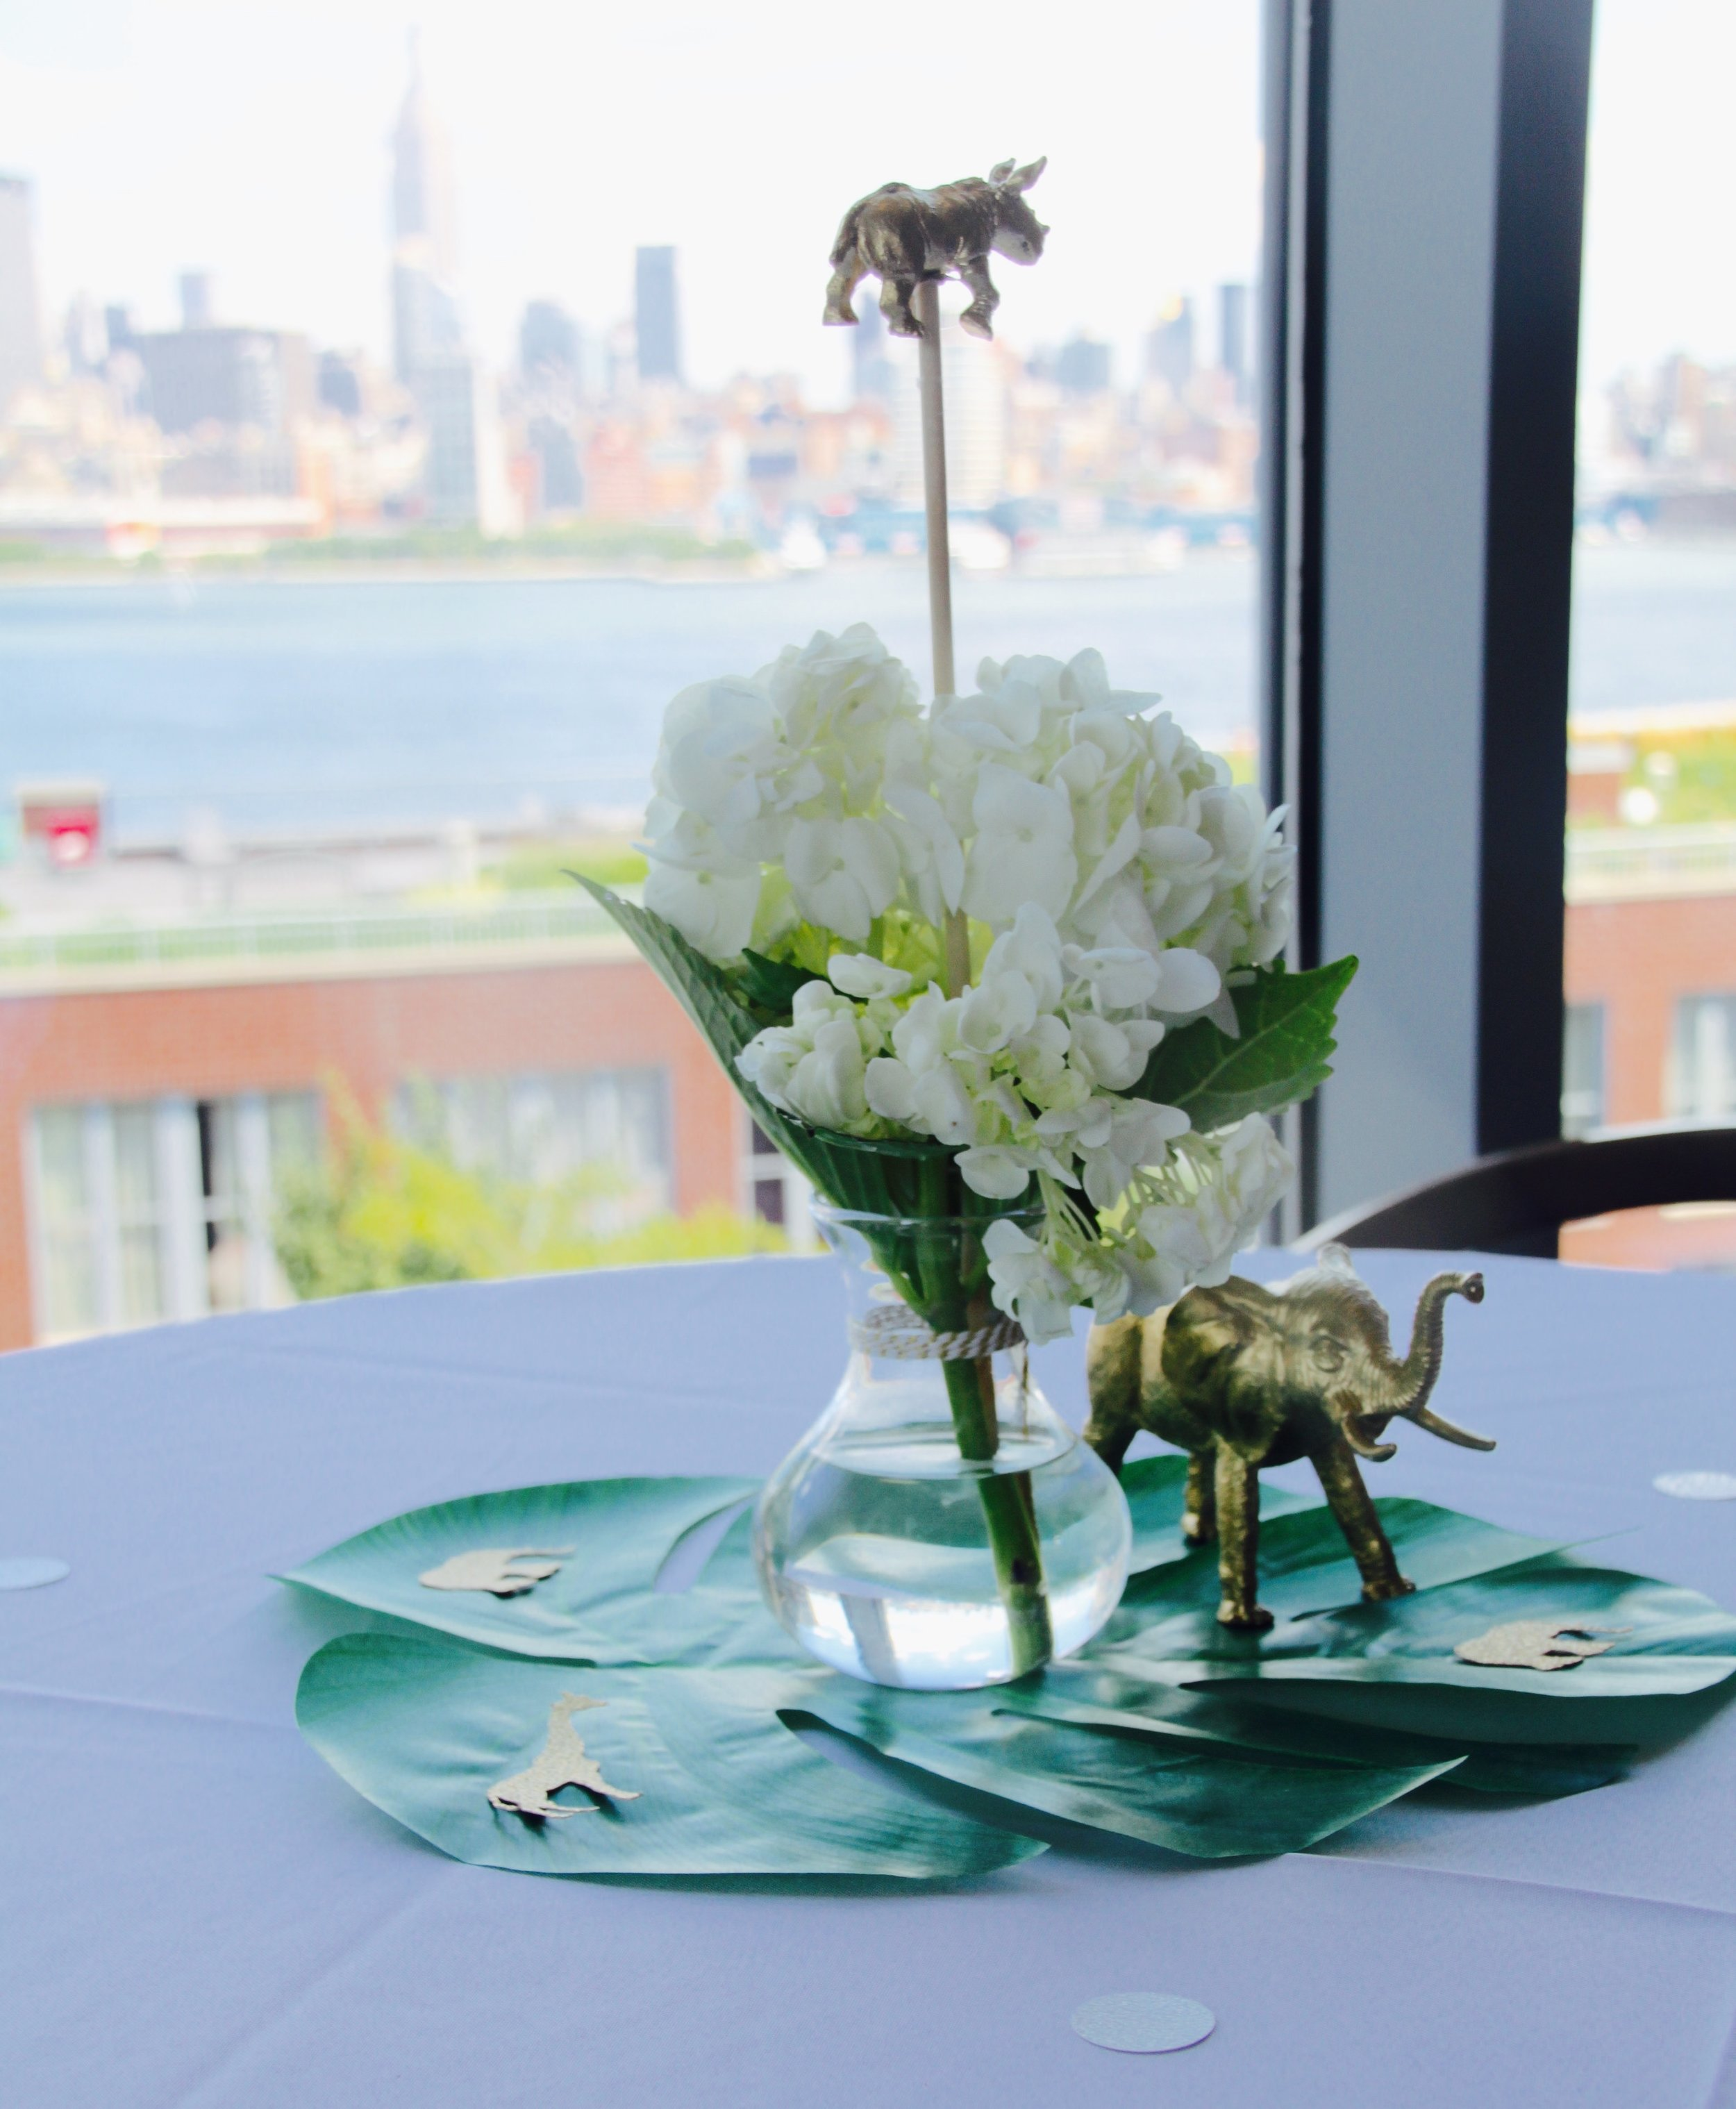 Centerpieces, white hydrangeas, green palms, and gold confetti and animals